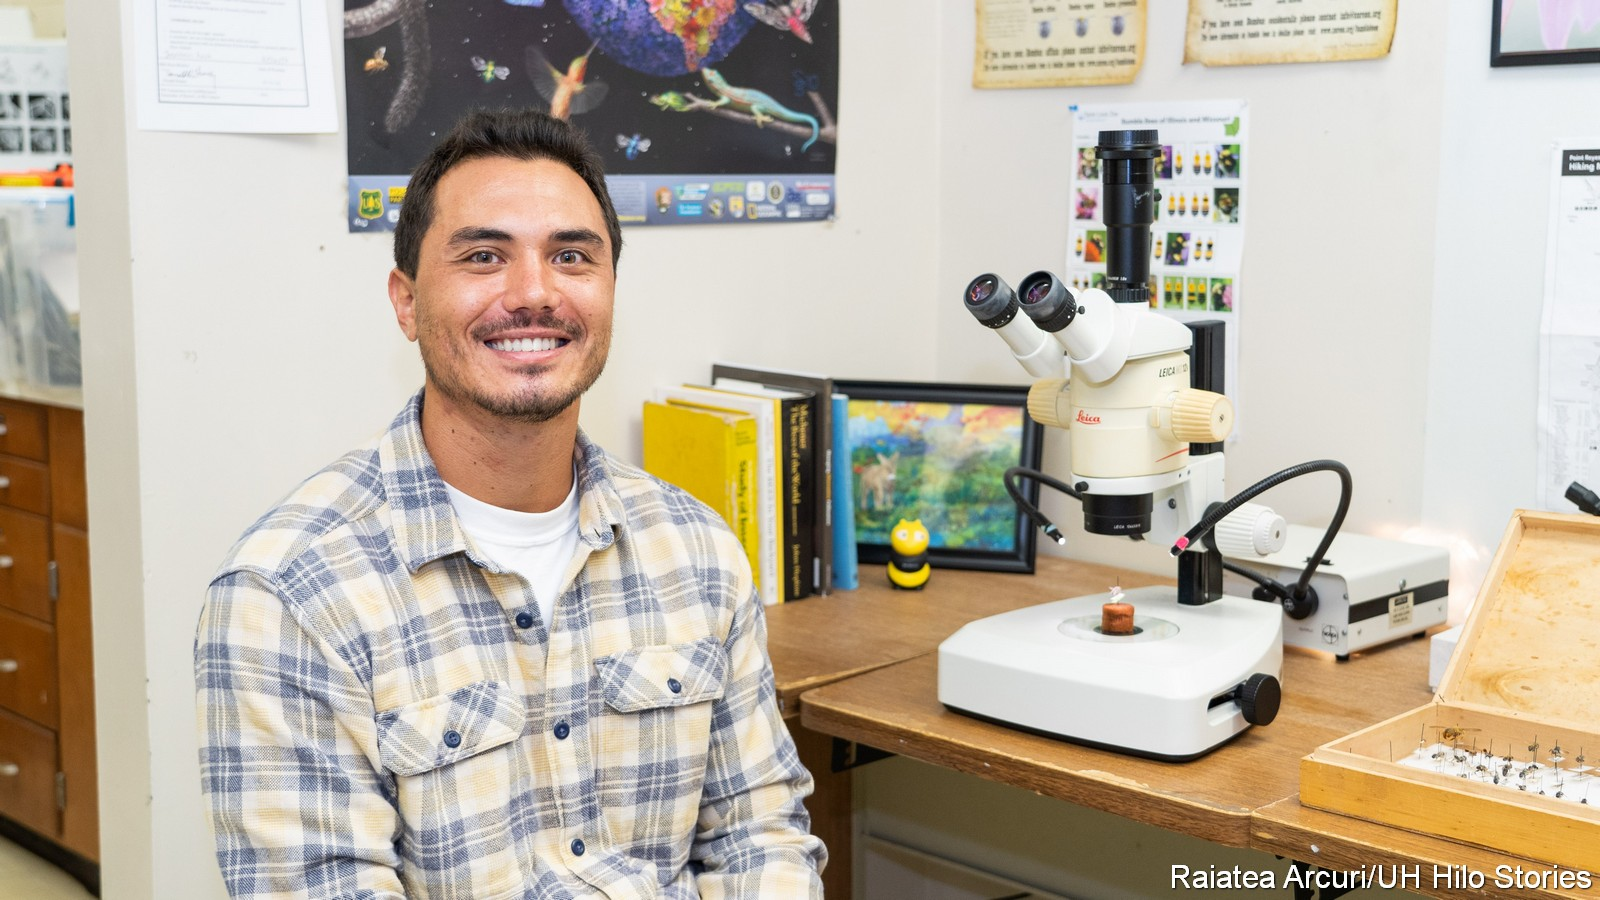 Jesse Tabor sits at desk. On desk is microscope and bee display.